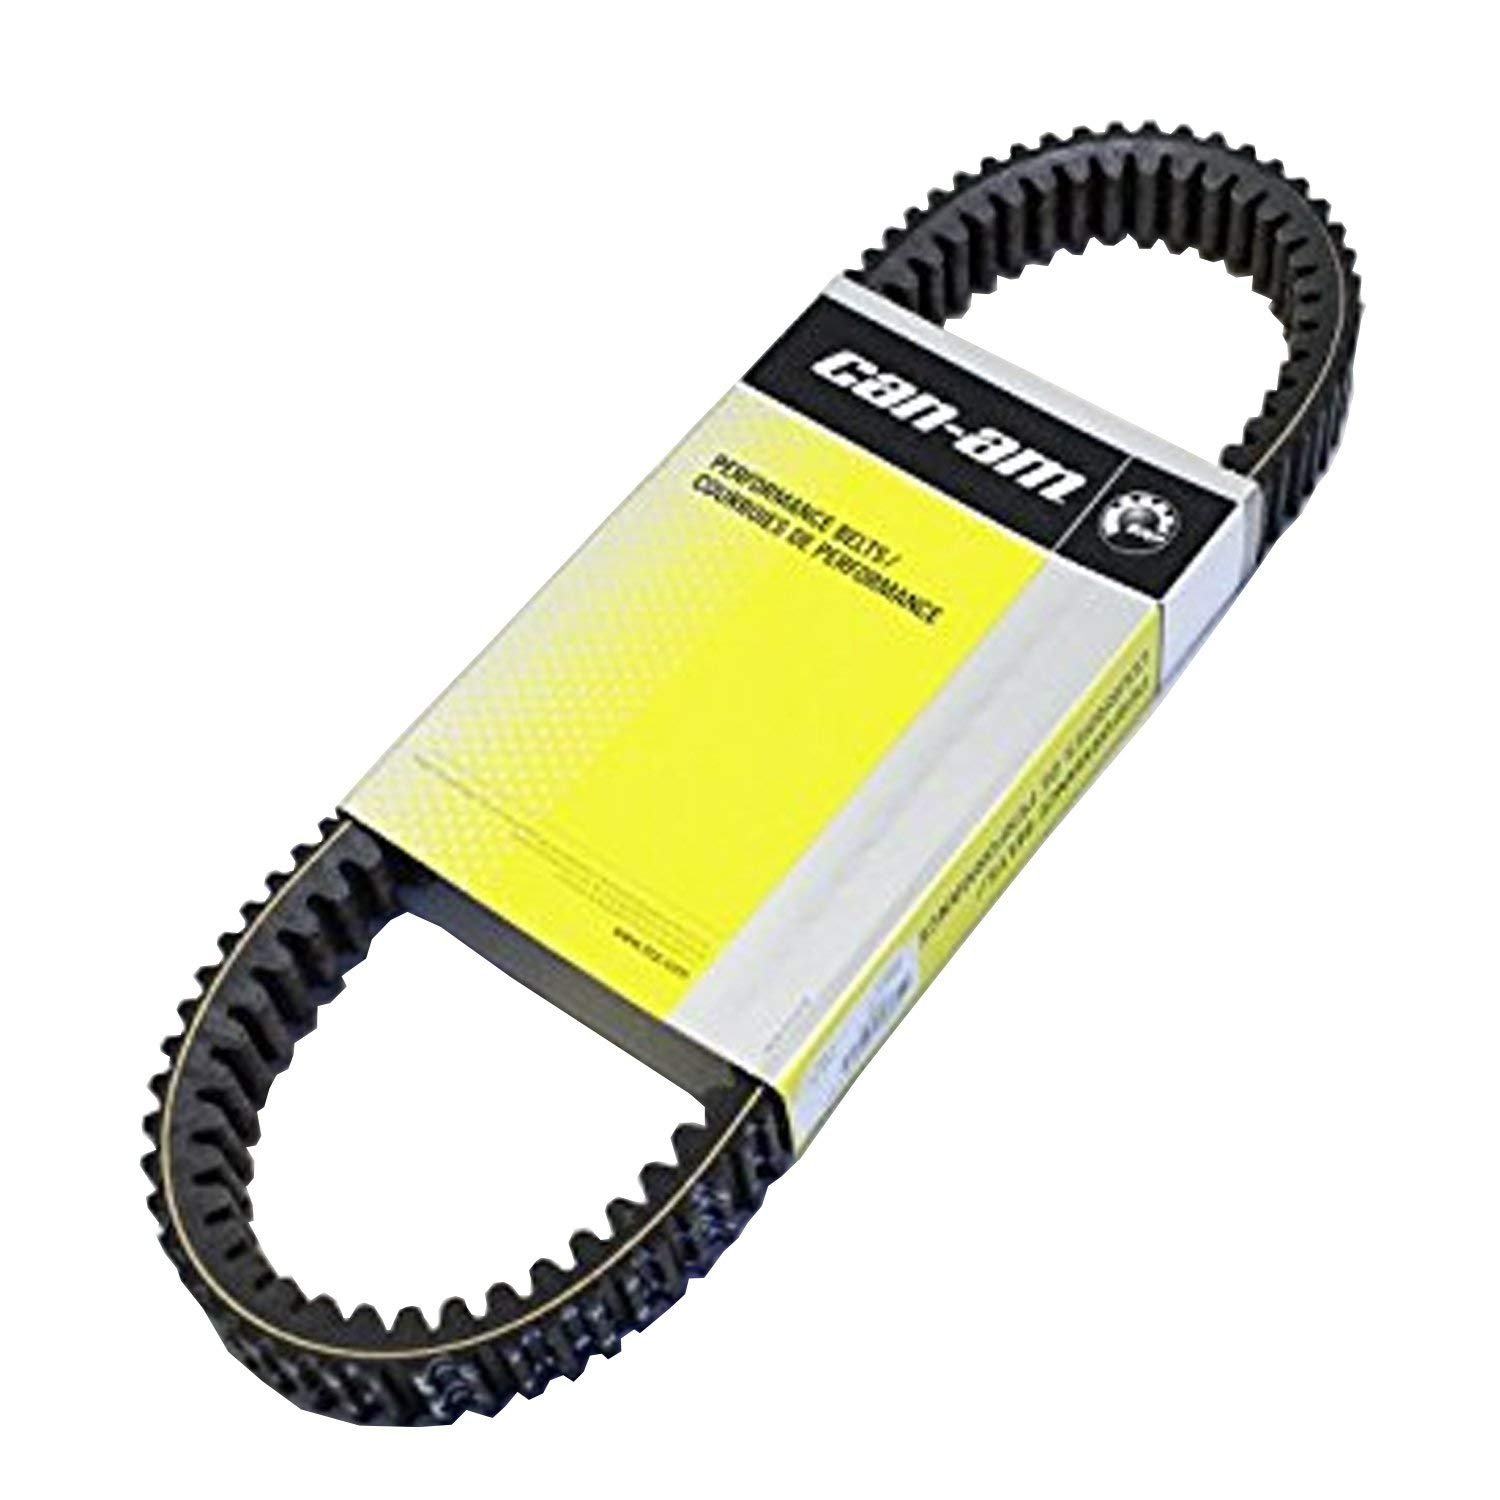 Can-Am New OEM High Performance Drive V Belt, Maverick X3, 422280651 by Can-Am